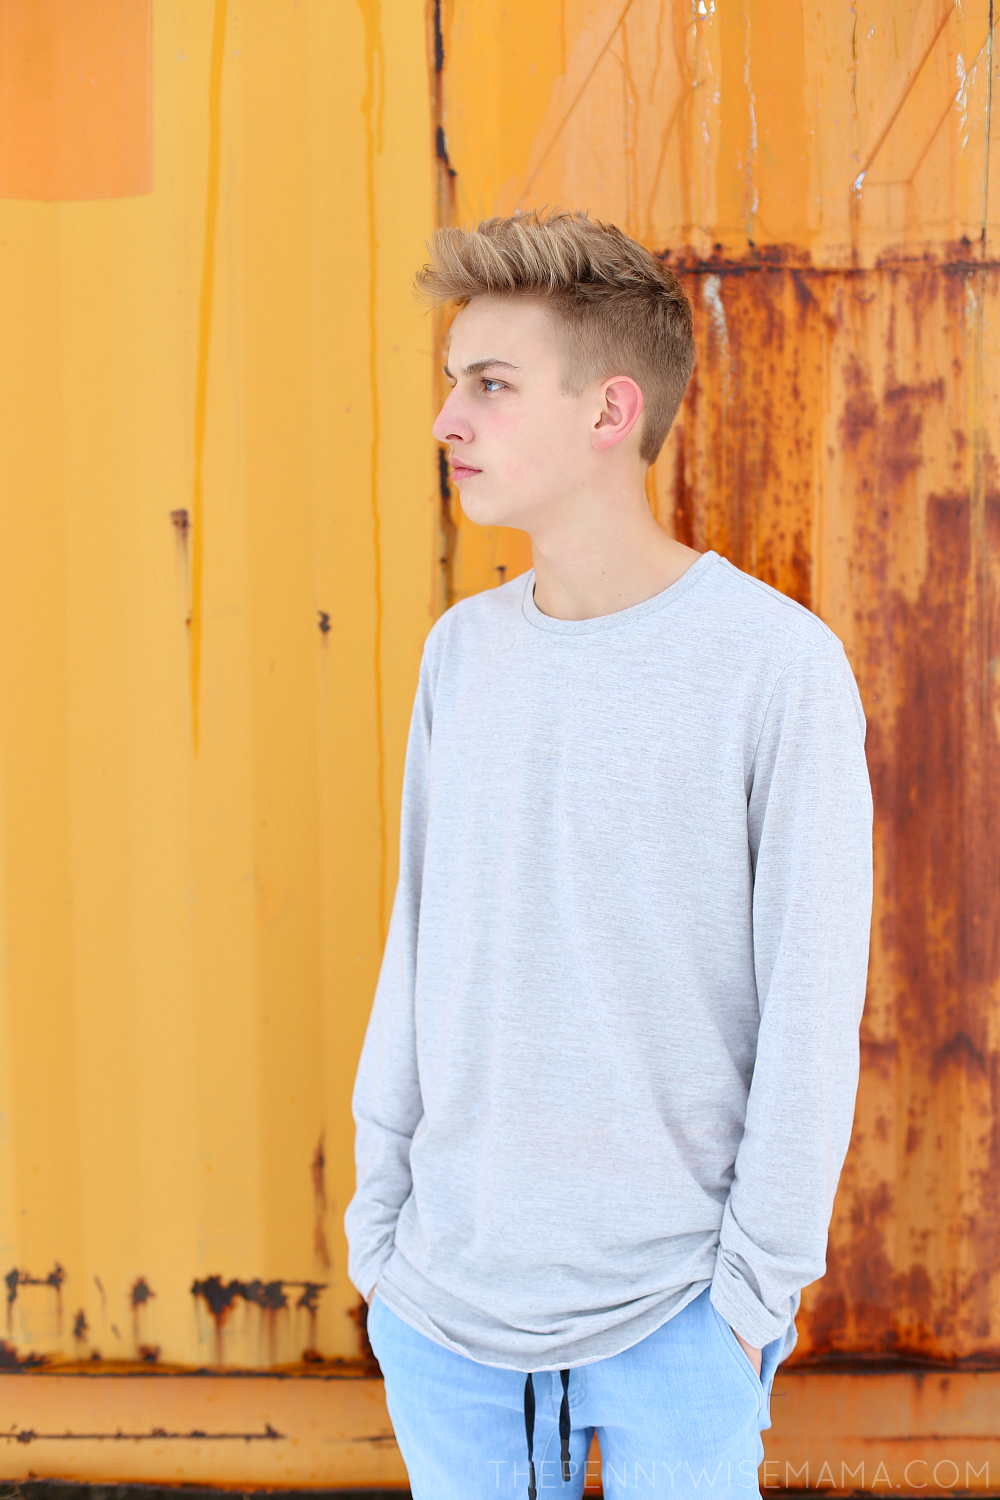 Easy Hairstyle for Teen Boys